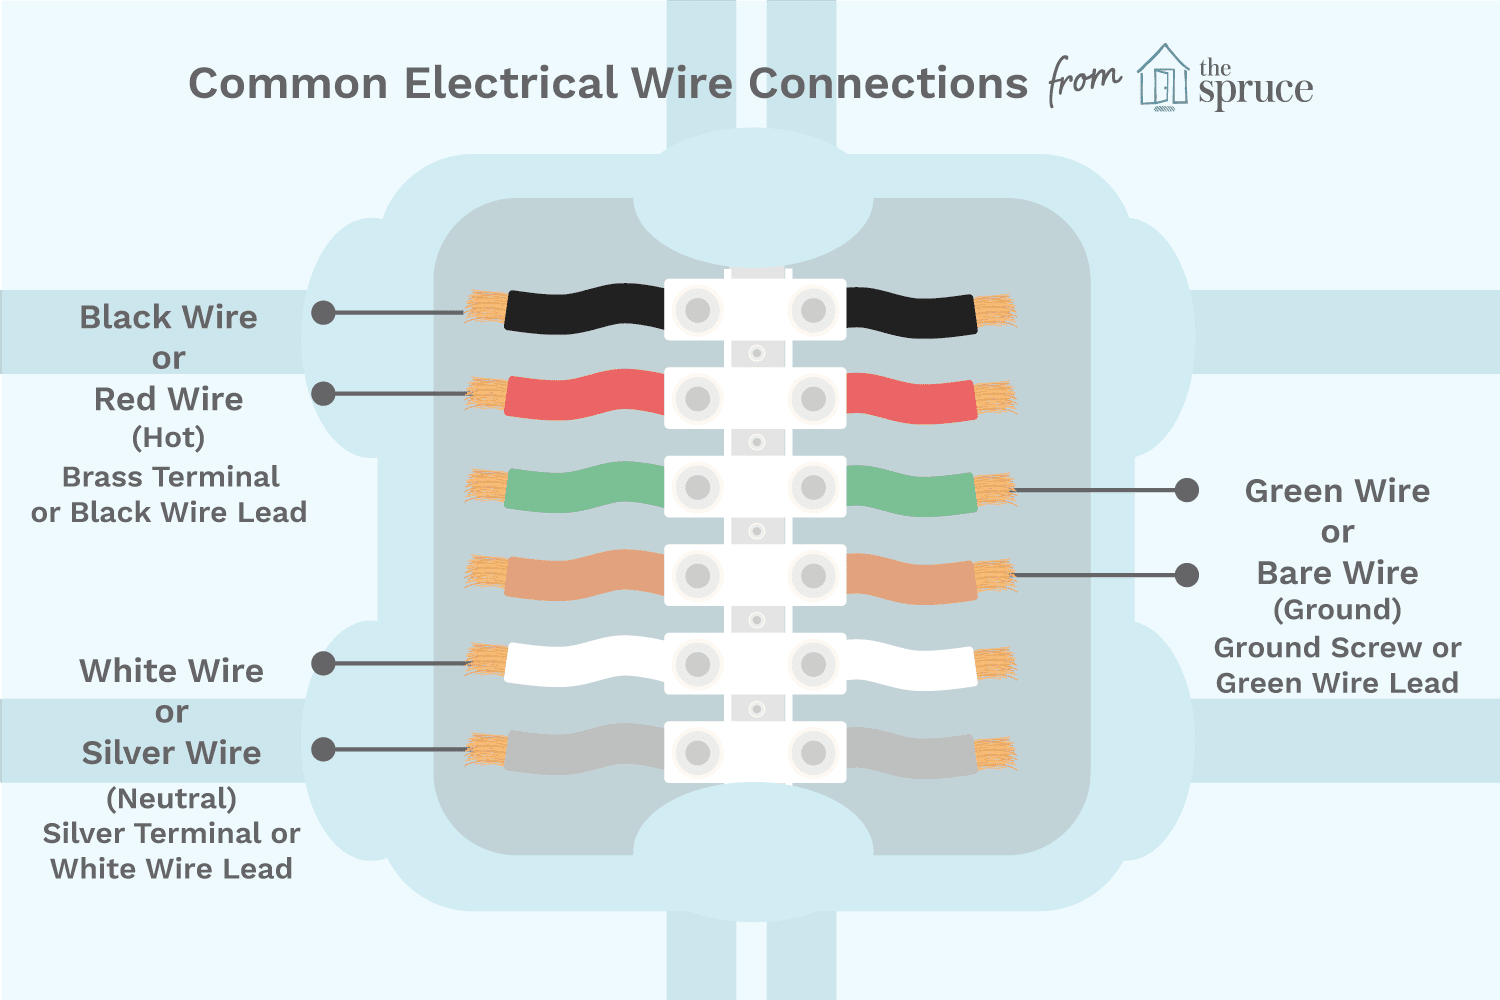 Color Coding Of Electrical Wires And Terminal Screws Lamp Holder Wiring Diagram Electric